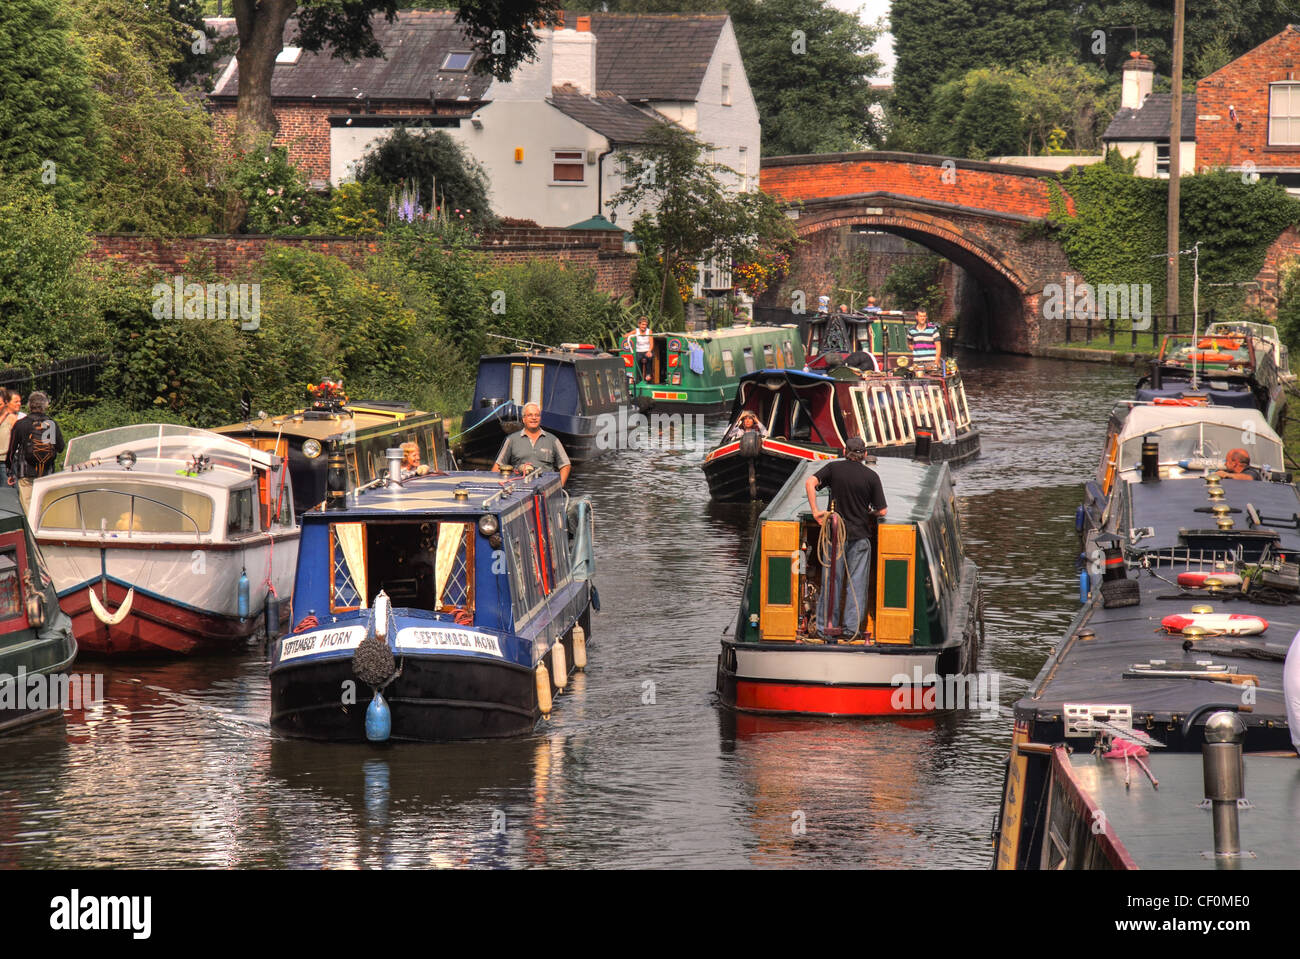 English,Canal,Boats,Rush,hour,on,The,Bridgewater,Canal,Lymm,Village,Cheshire,England,UK,water,colourful,lots,of,barge,barges,colorful,sailers,sailors,bridge,Corbett,White,House,messing,about,on,the,canal,summer,canal,river,trust,festival,British Waterways,canal river trust,Lymm Festival,canalrivertrust,canalrivertrust.org.uk,gotonysmith